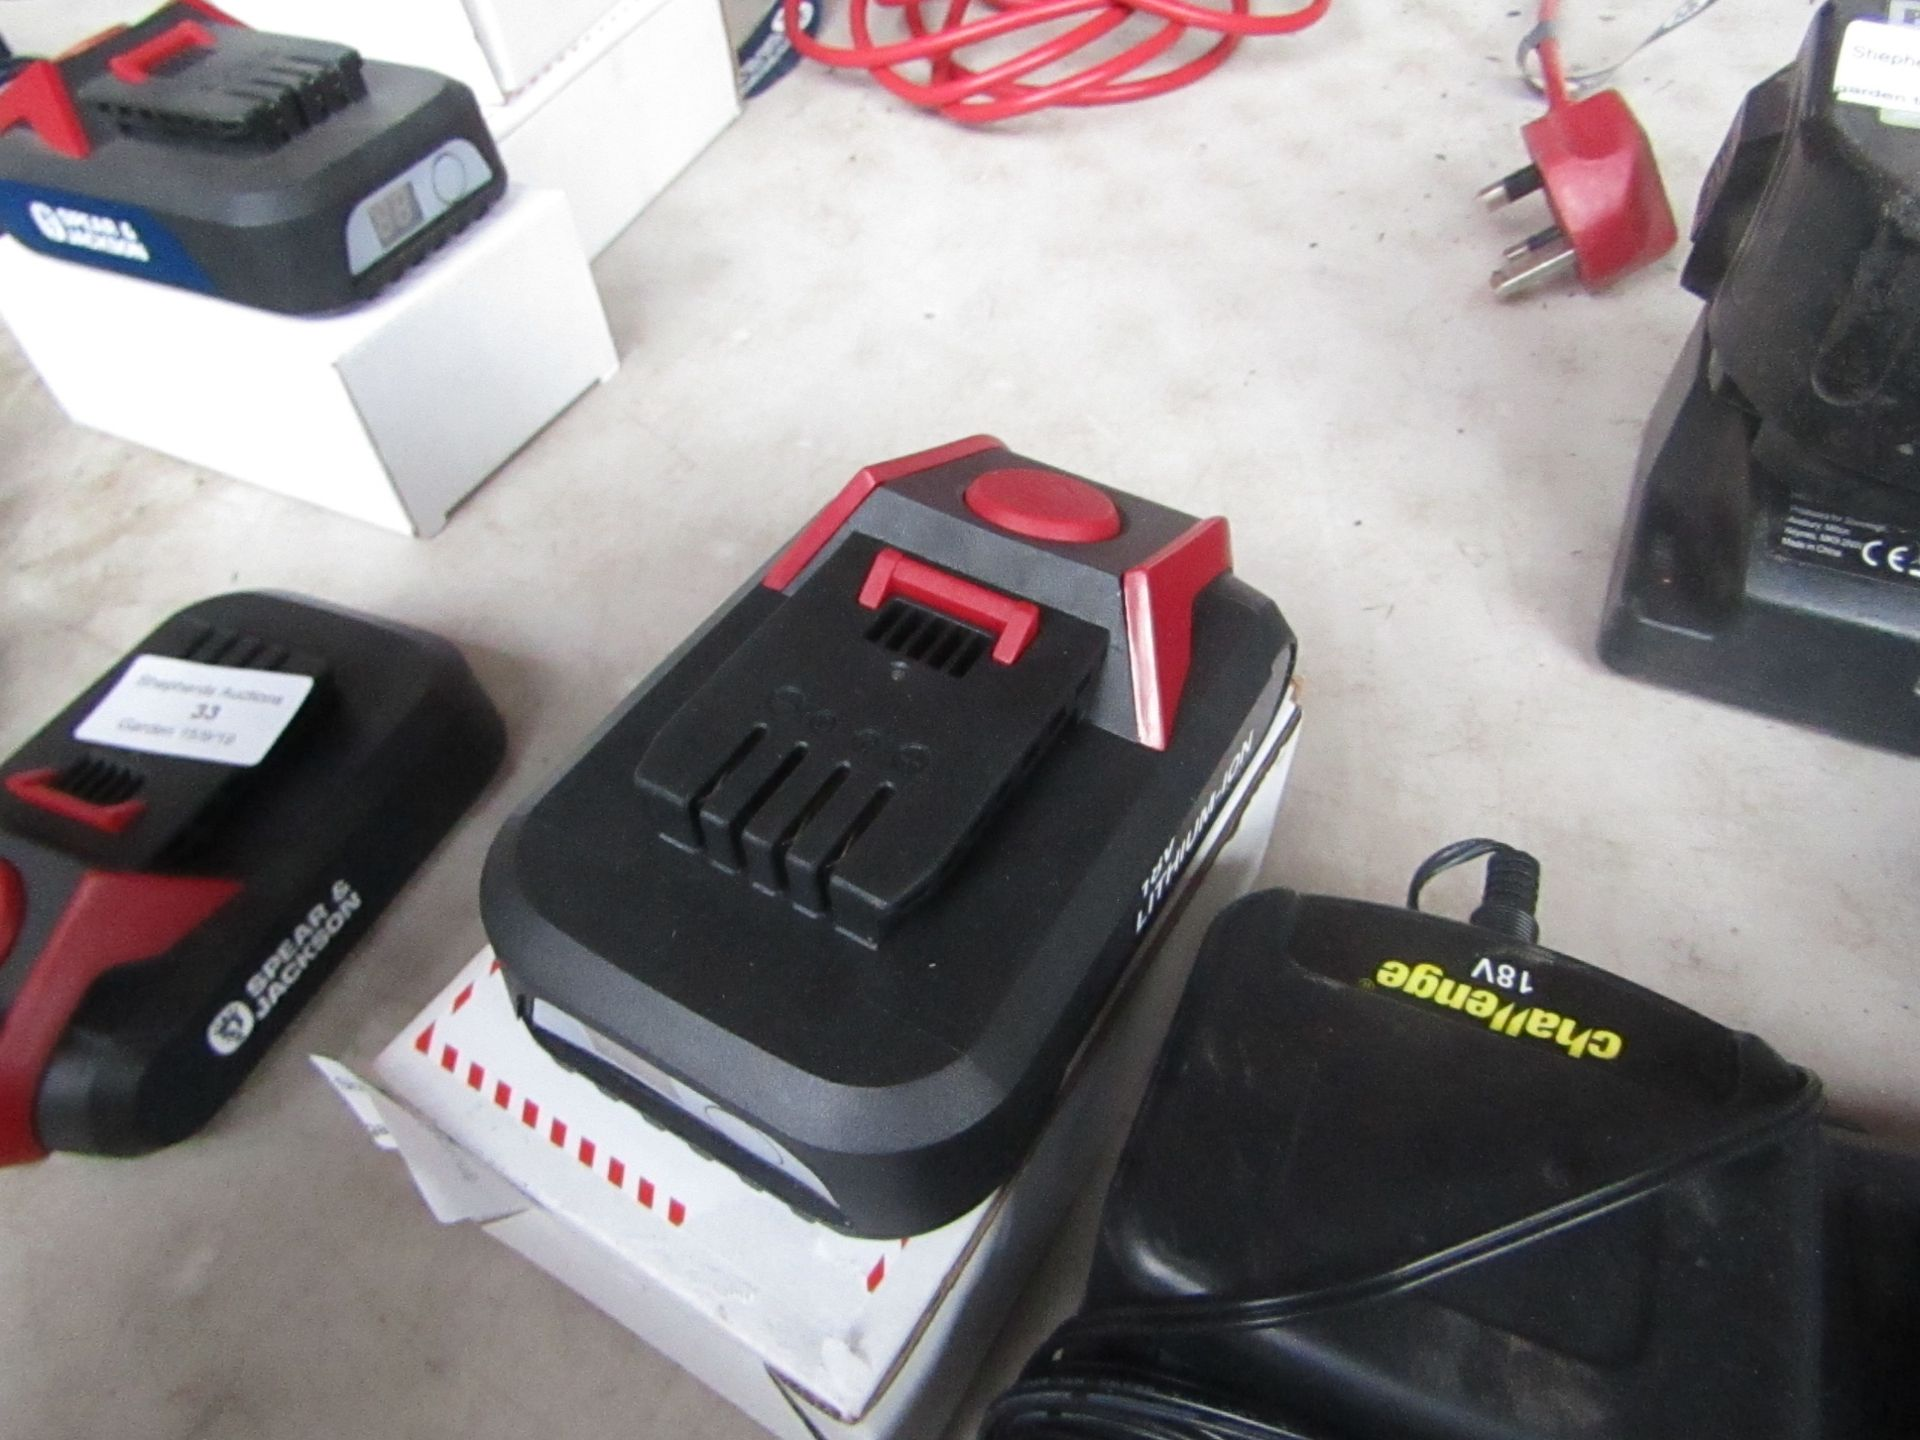 Lotto 55 - Spear and Jackson 18V Battery, tested working when attached to a Power tool.